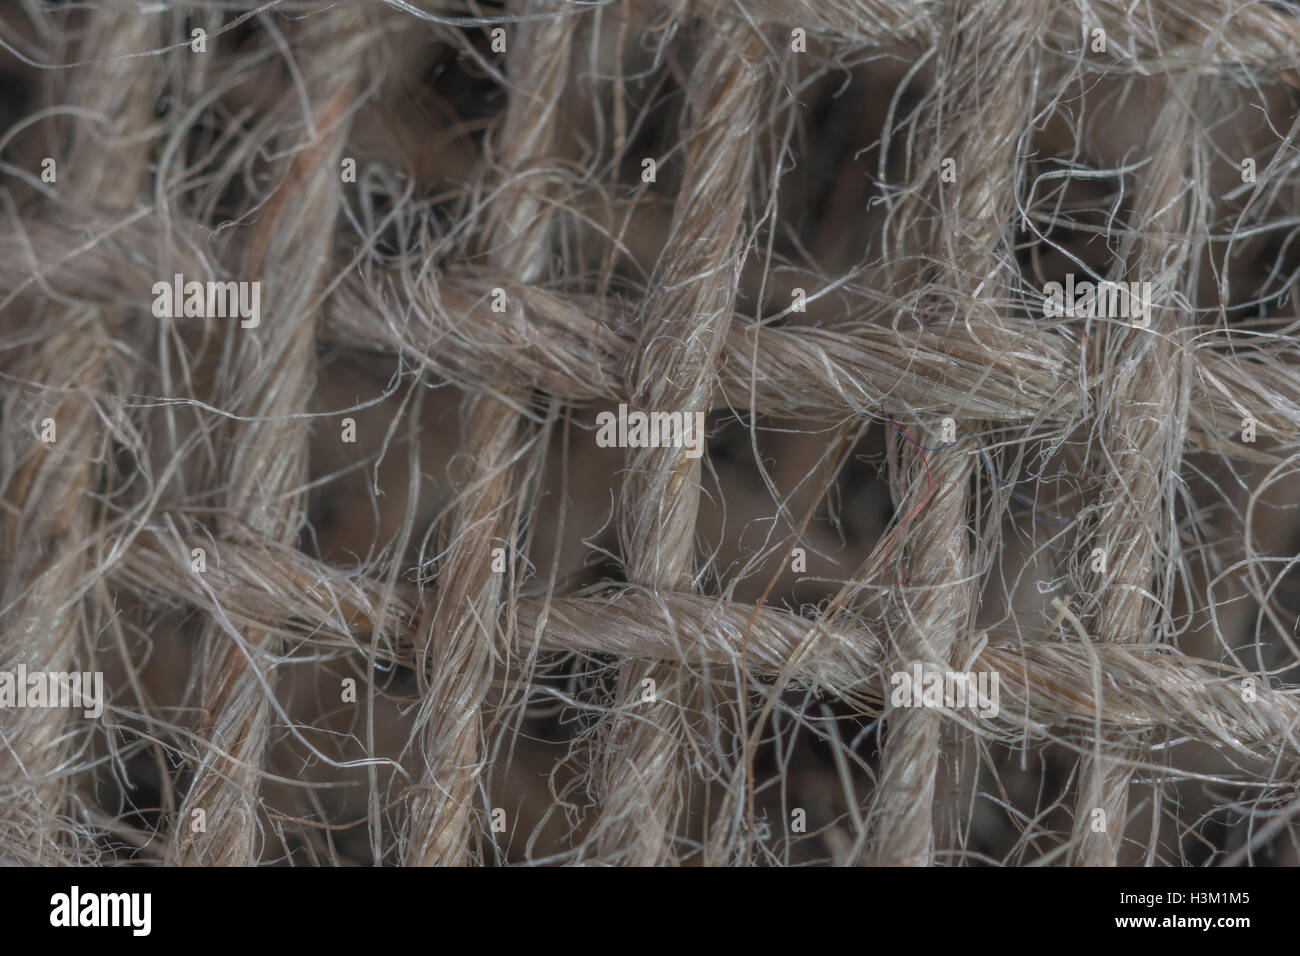 Macro-photo of natural fibre, jute-like, sacking material showing detail of the fine threads. - Stock Image